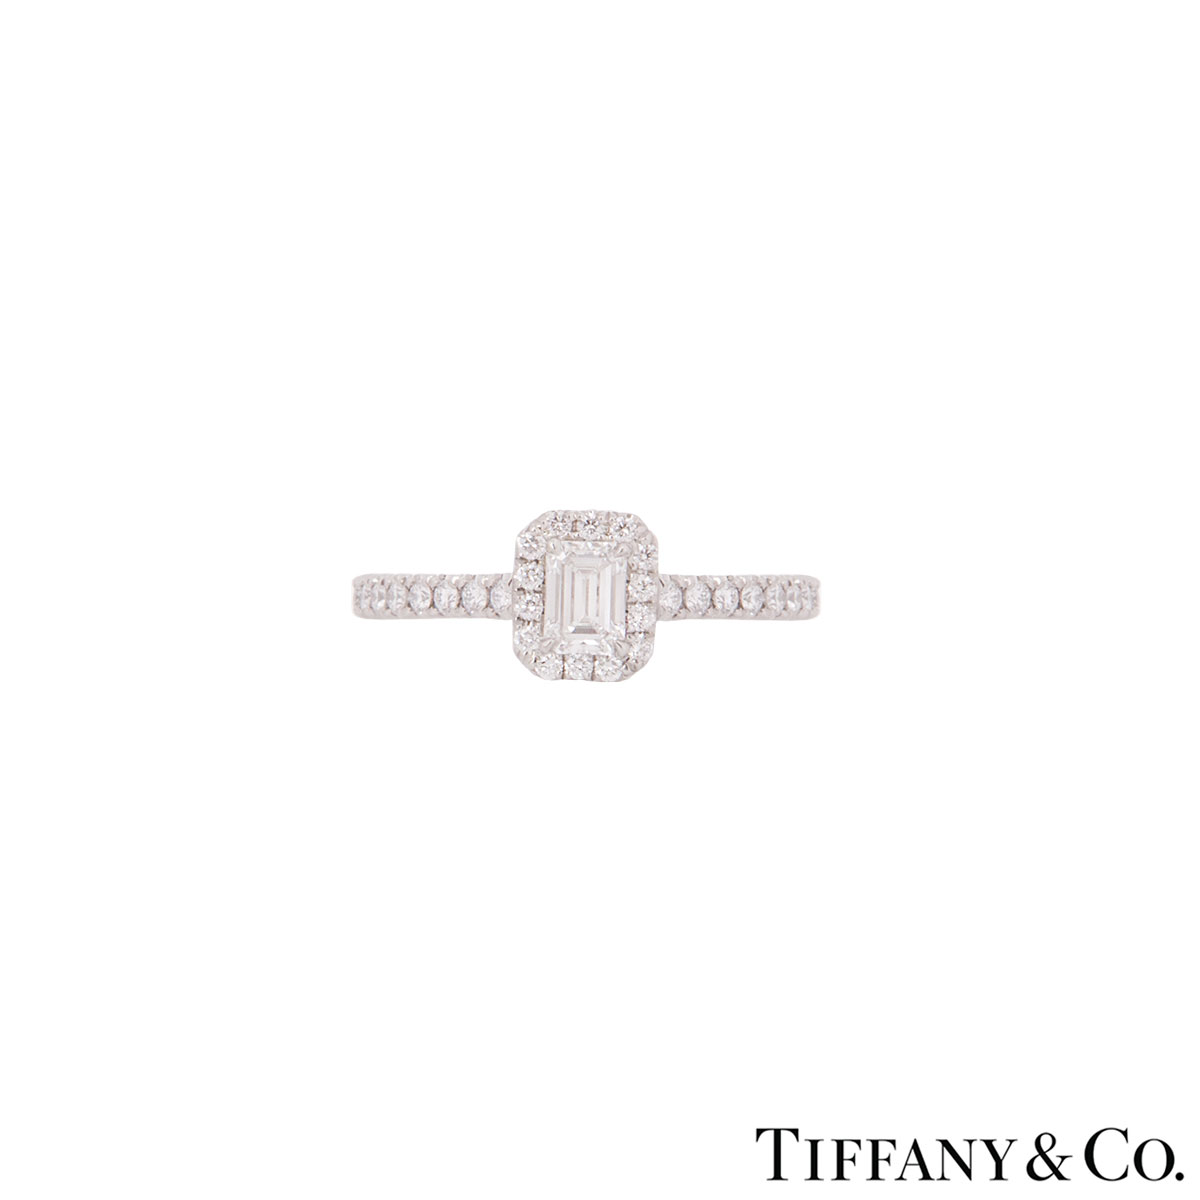 Tiffany & Co. Platinum Diamond Soleste Ring